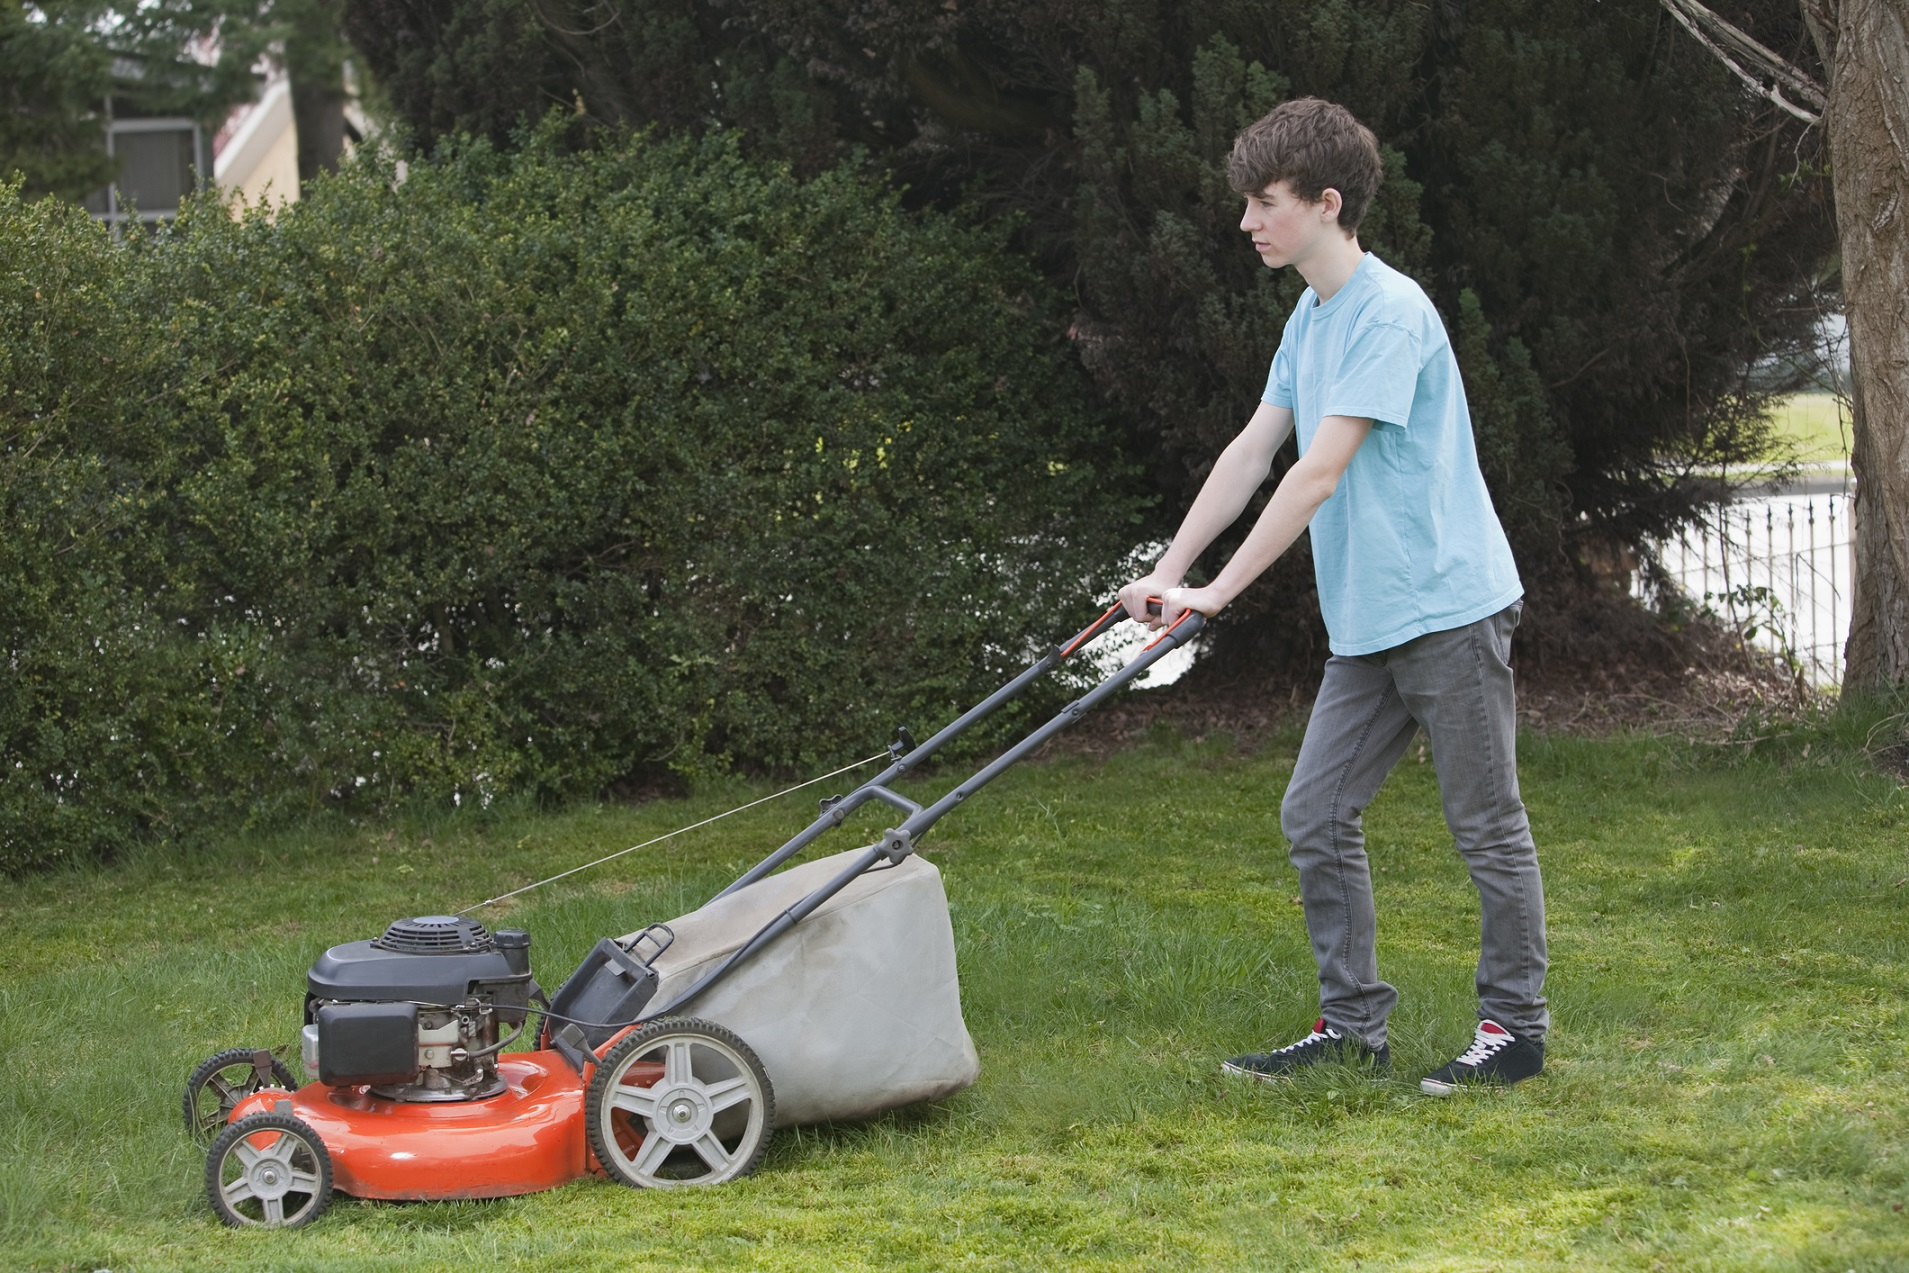 Kids And Lawn Mowers Tips To Stay Safe Promise